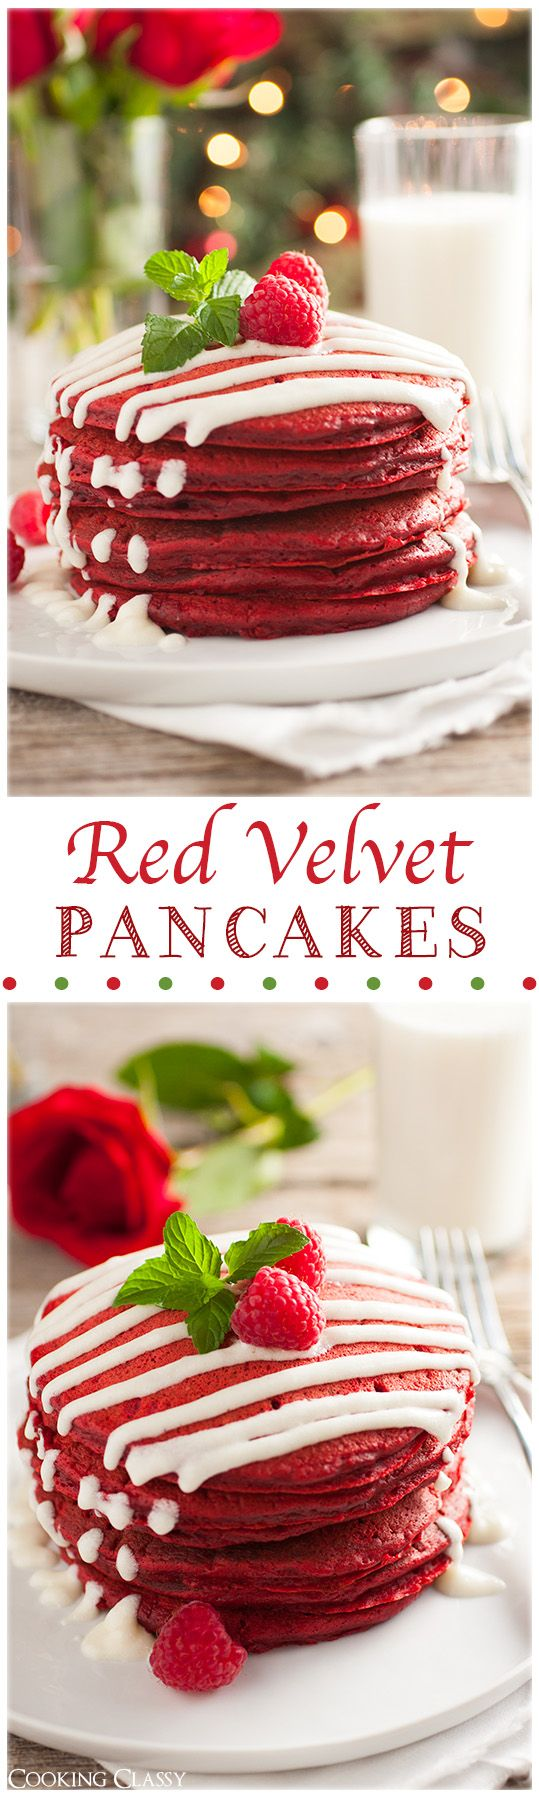 Red Velvet Pancakes with Cream Cheese Glaze - we have these for Christmas morning breakfast, they are AMAZING!! #pancakes #redvelvet: